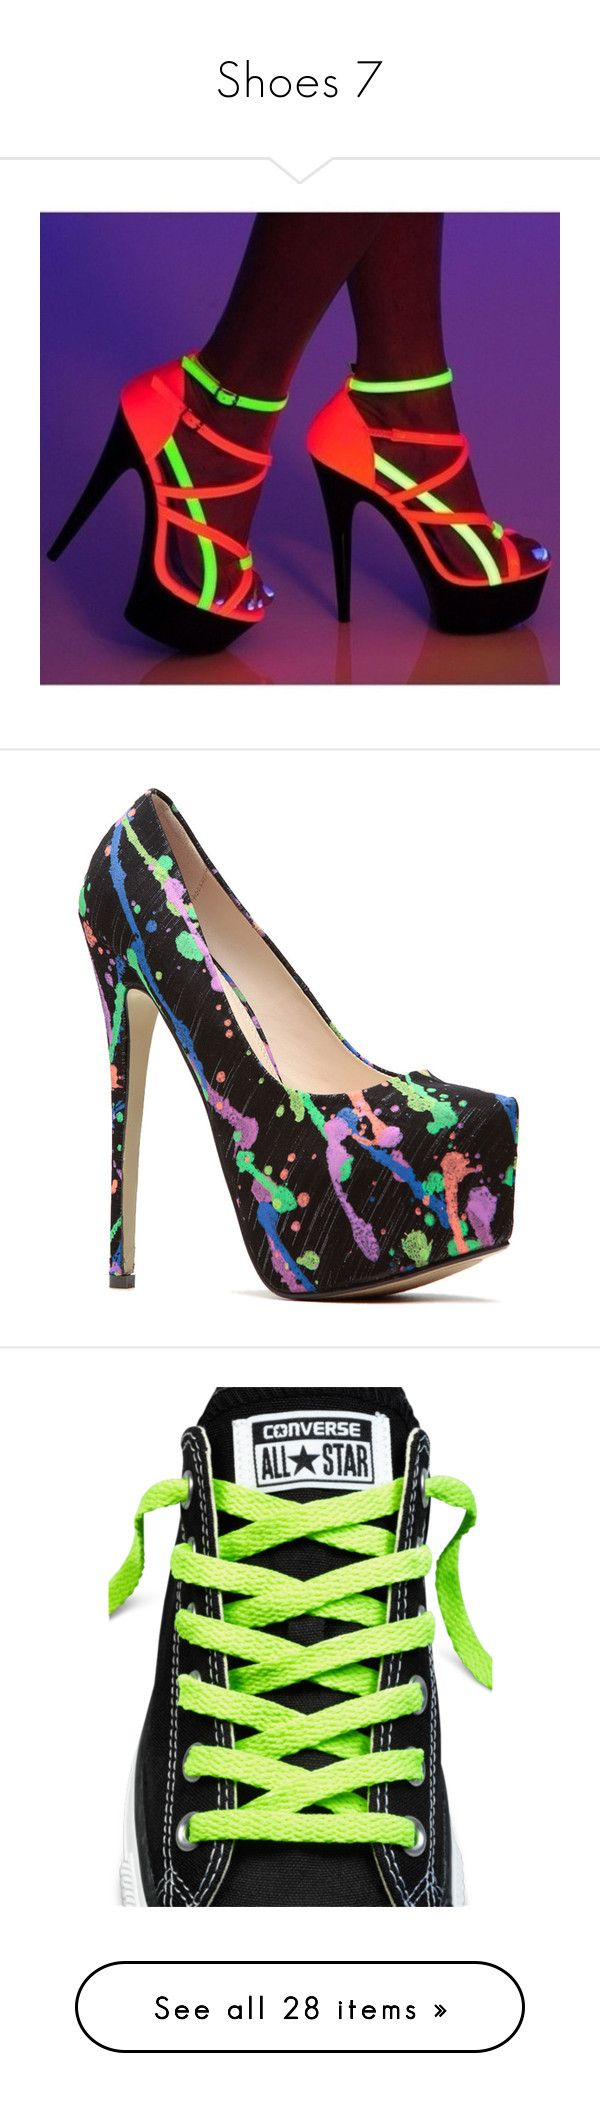 """""""Shoes 7"""" by katmccreery on Polyvore featuring shoes, neon, neon high heel shoes, neon shoes, fluorescent shoes, strappy high heel shoes, strappy shoes, pumps, heels and black almond toe pumps"""